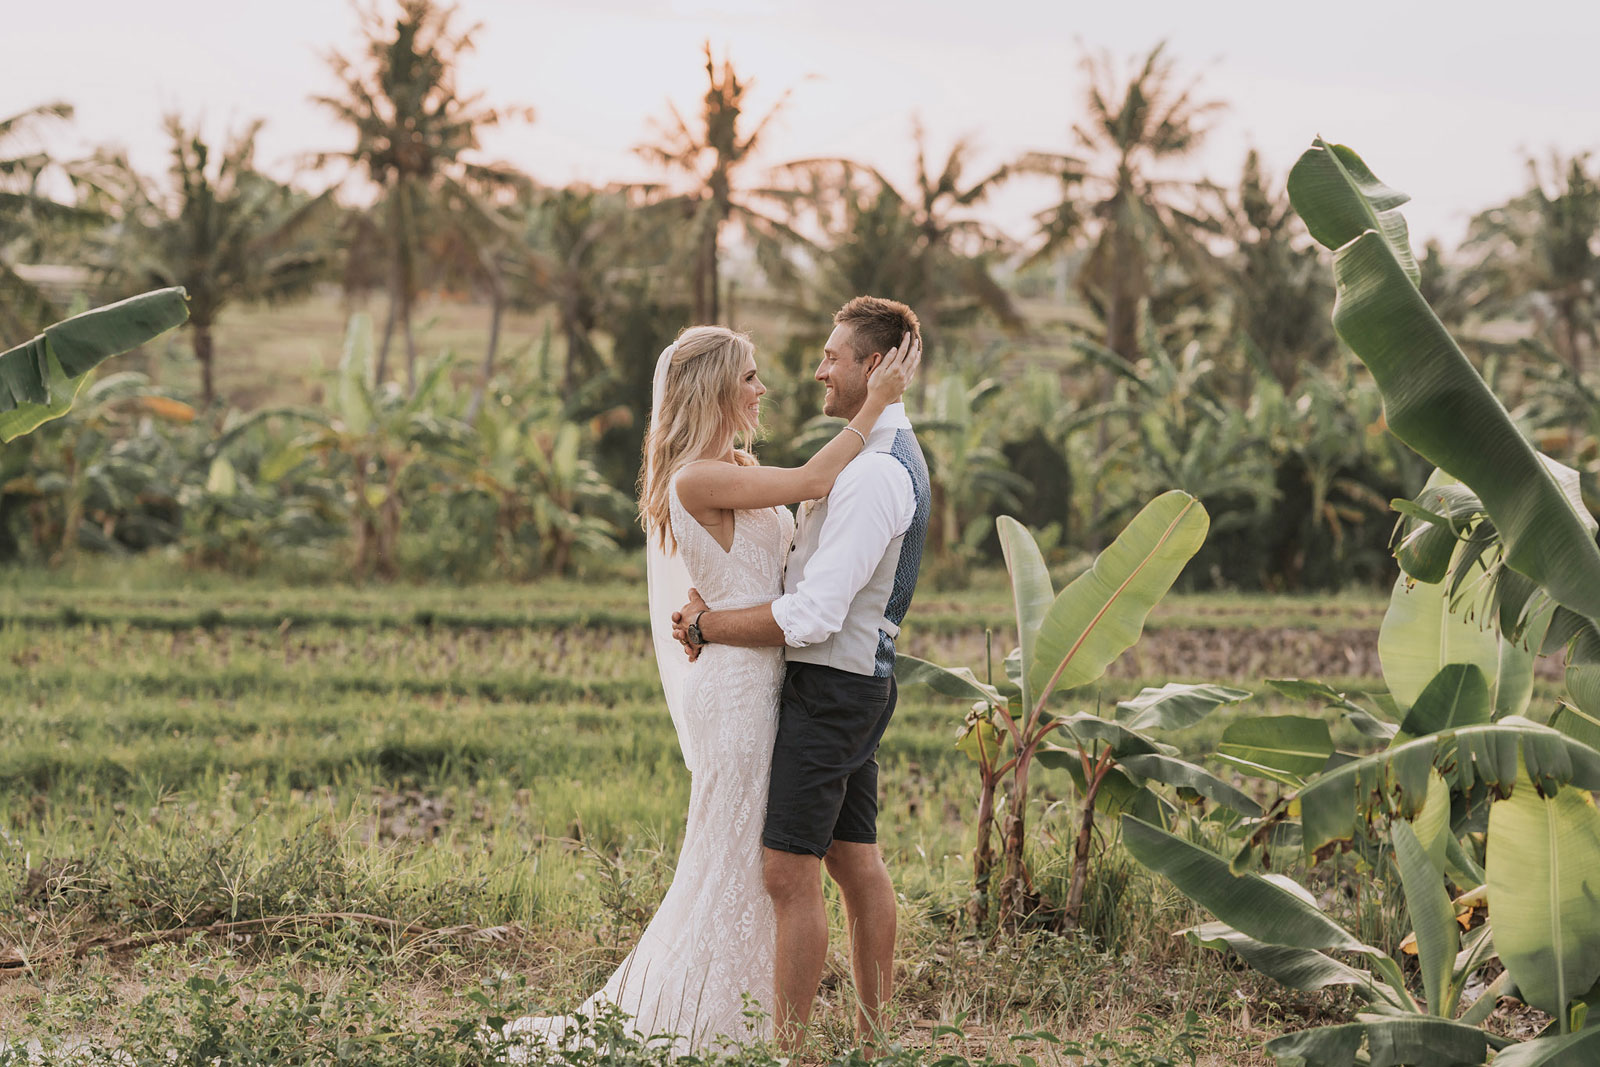 newfound-t-k-canggu-bali-ubud-wedding-photographer-680